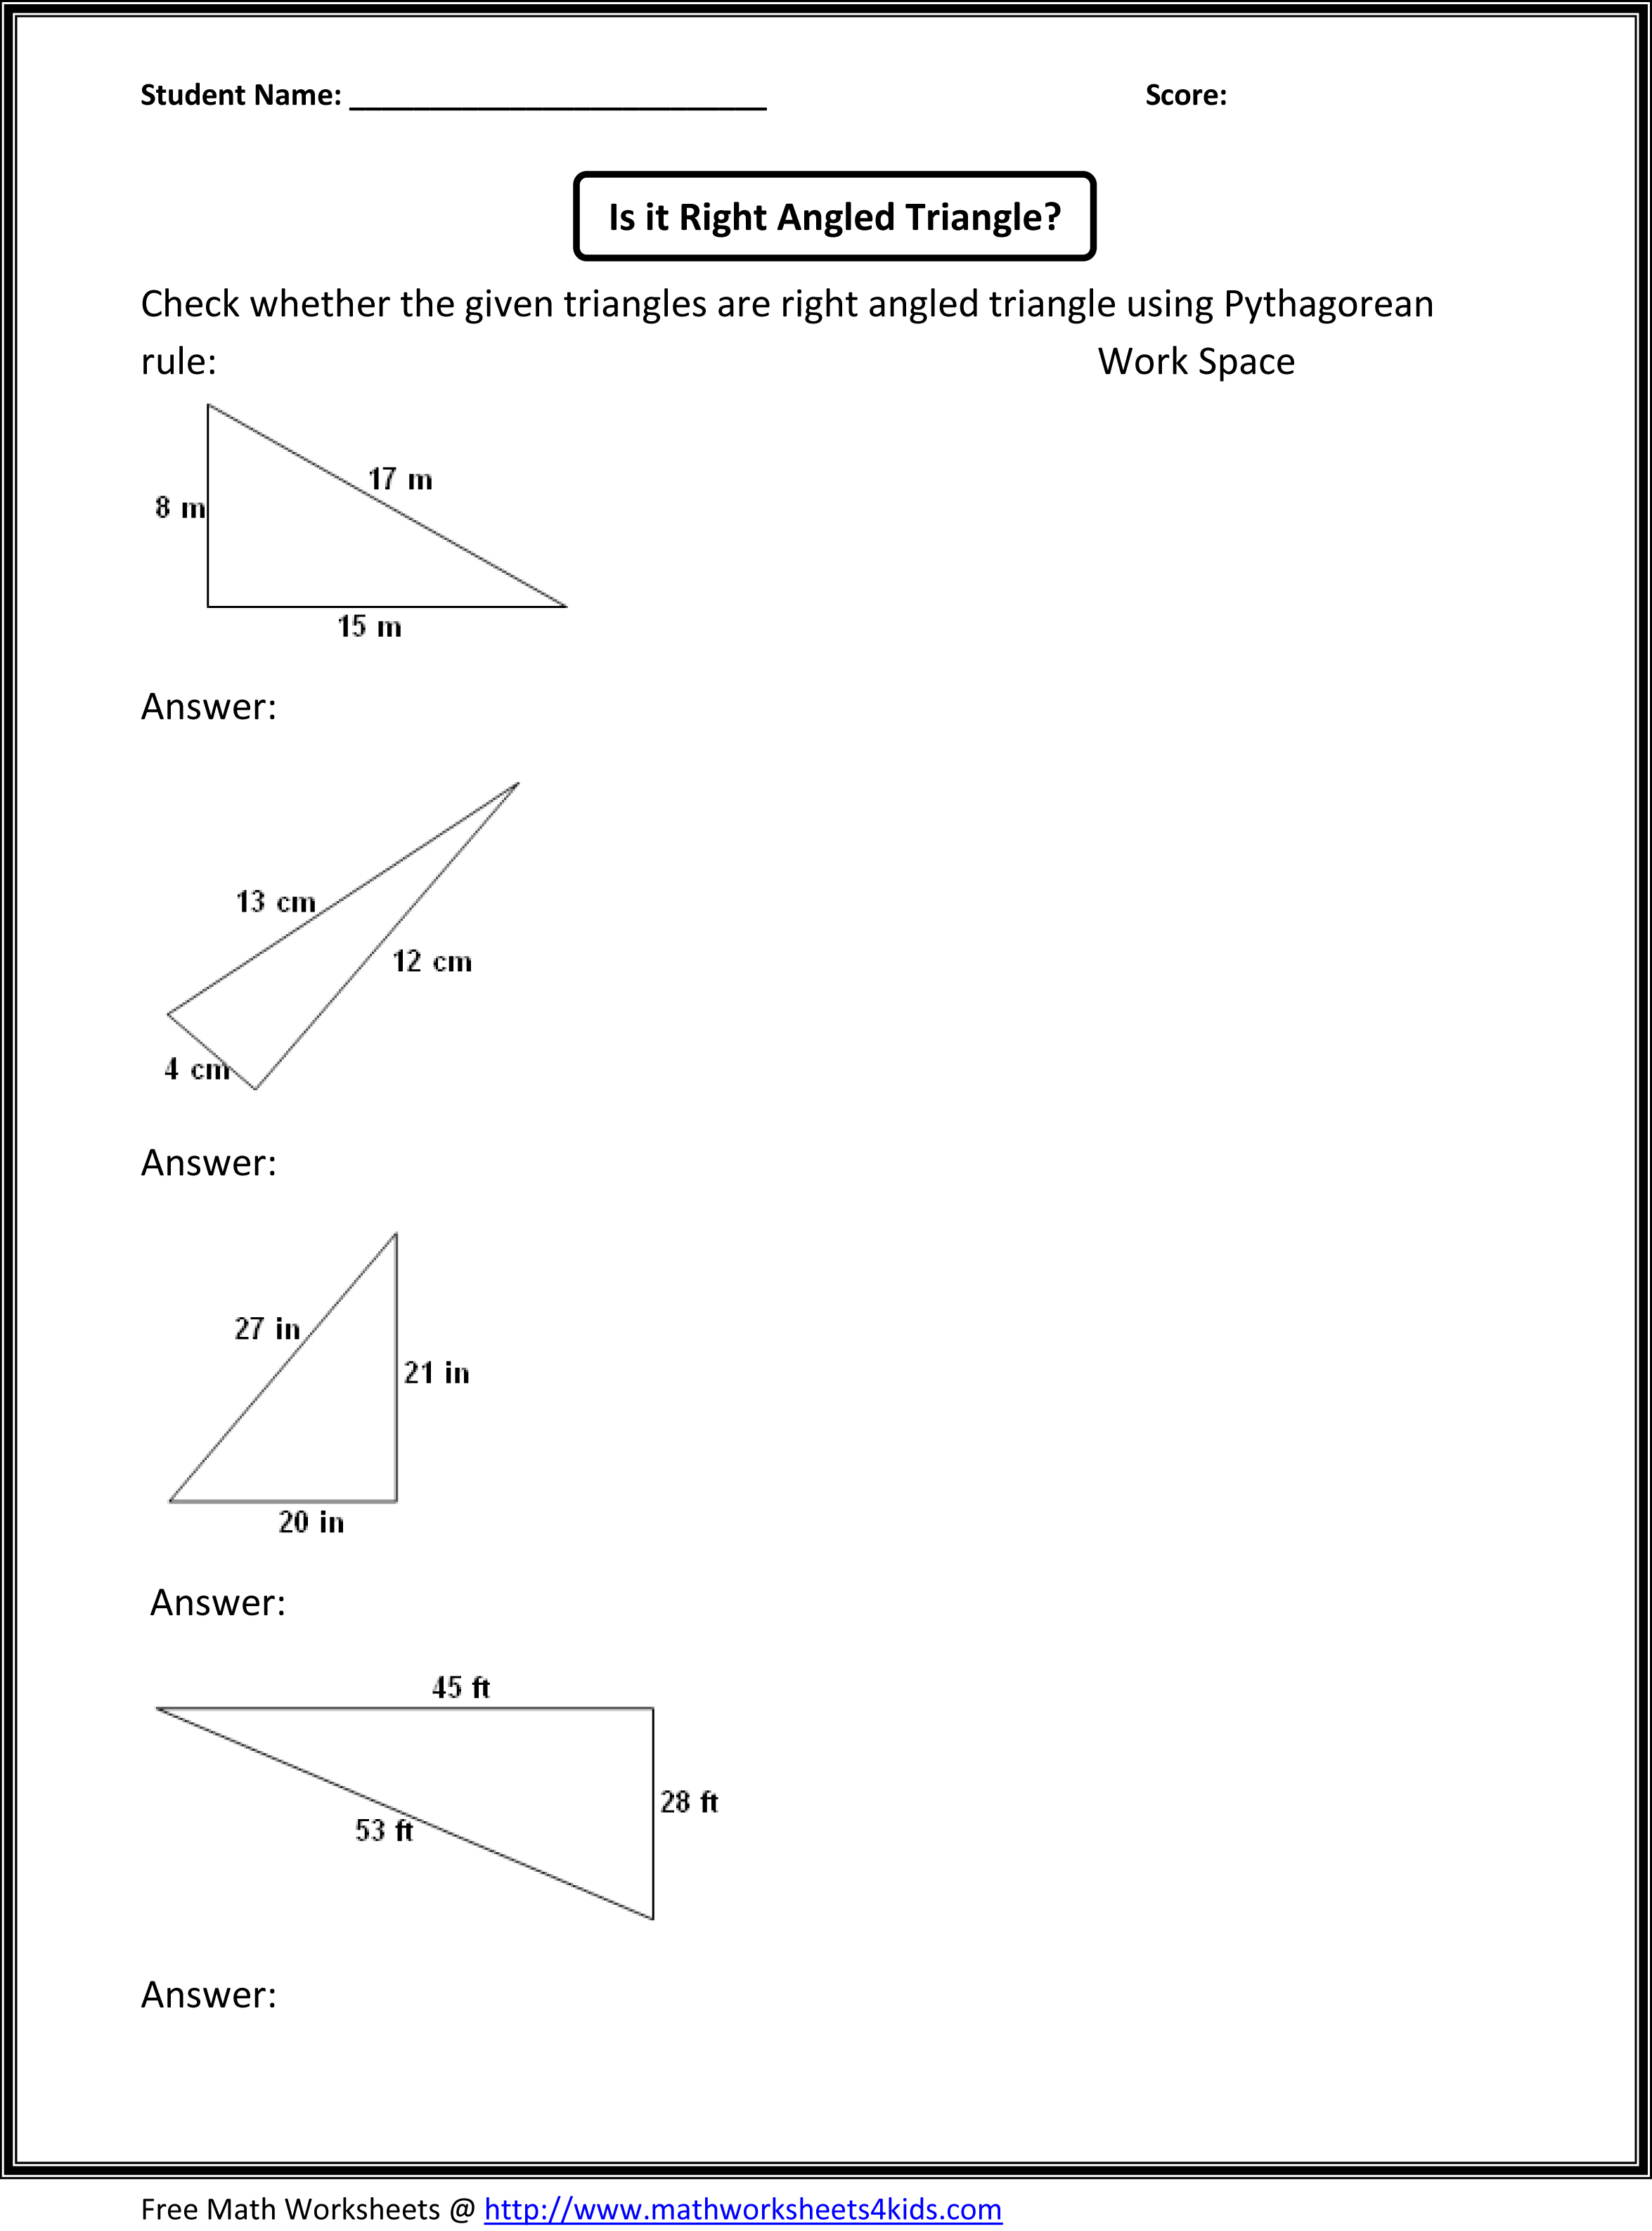 math worksheet : wiley plus answers anic chemistry : Math Worksheets For Grade 7 With Answer